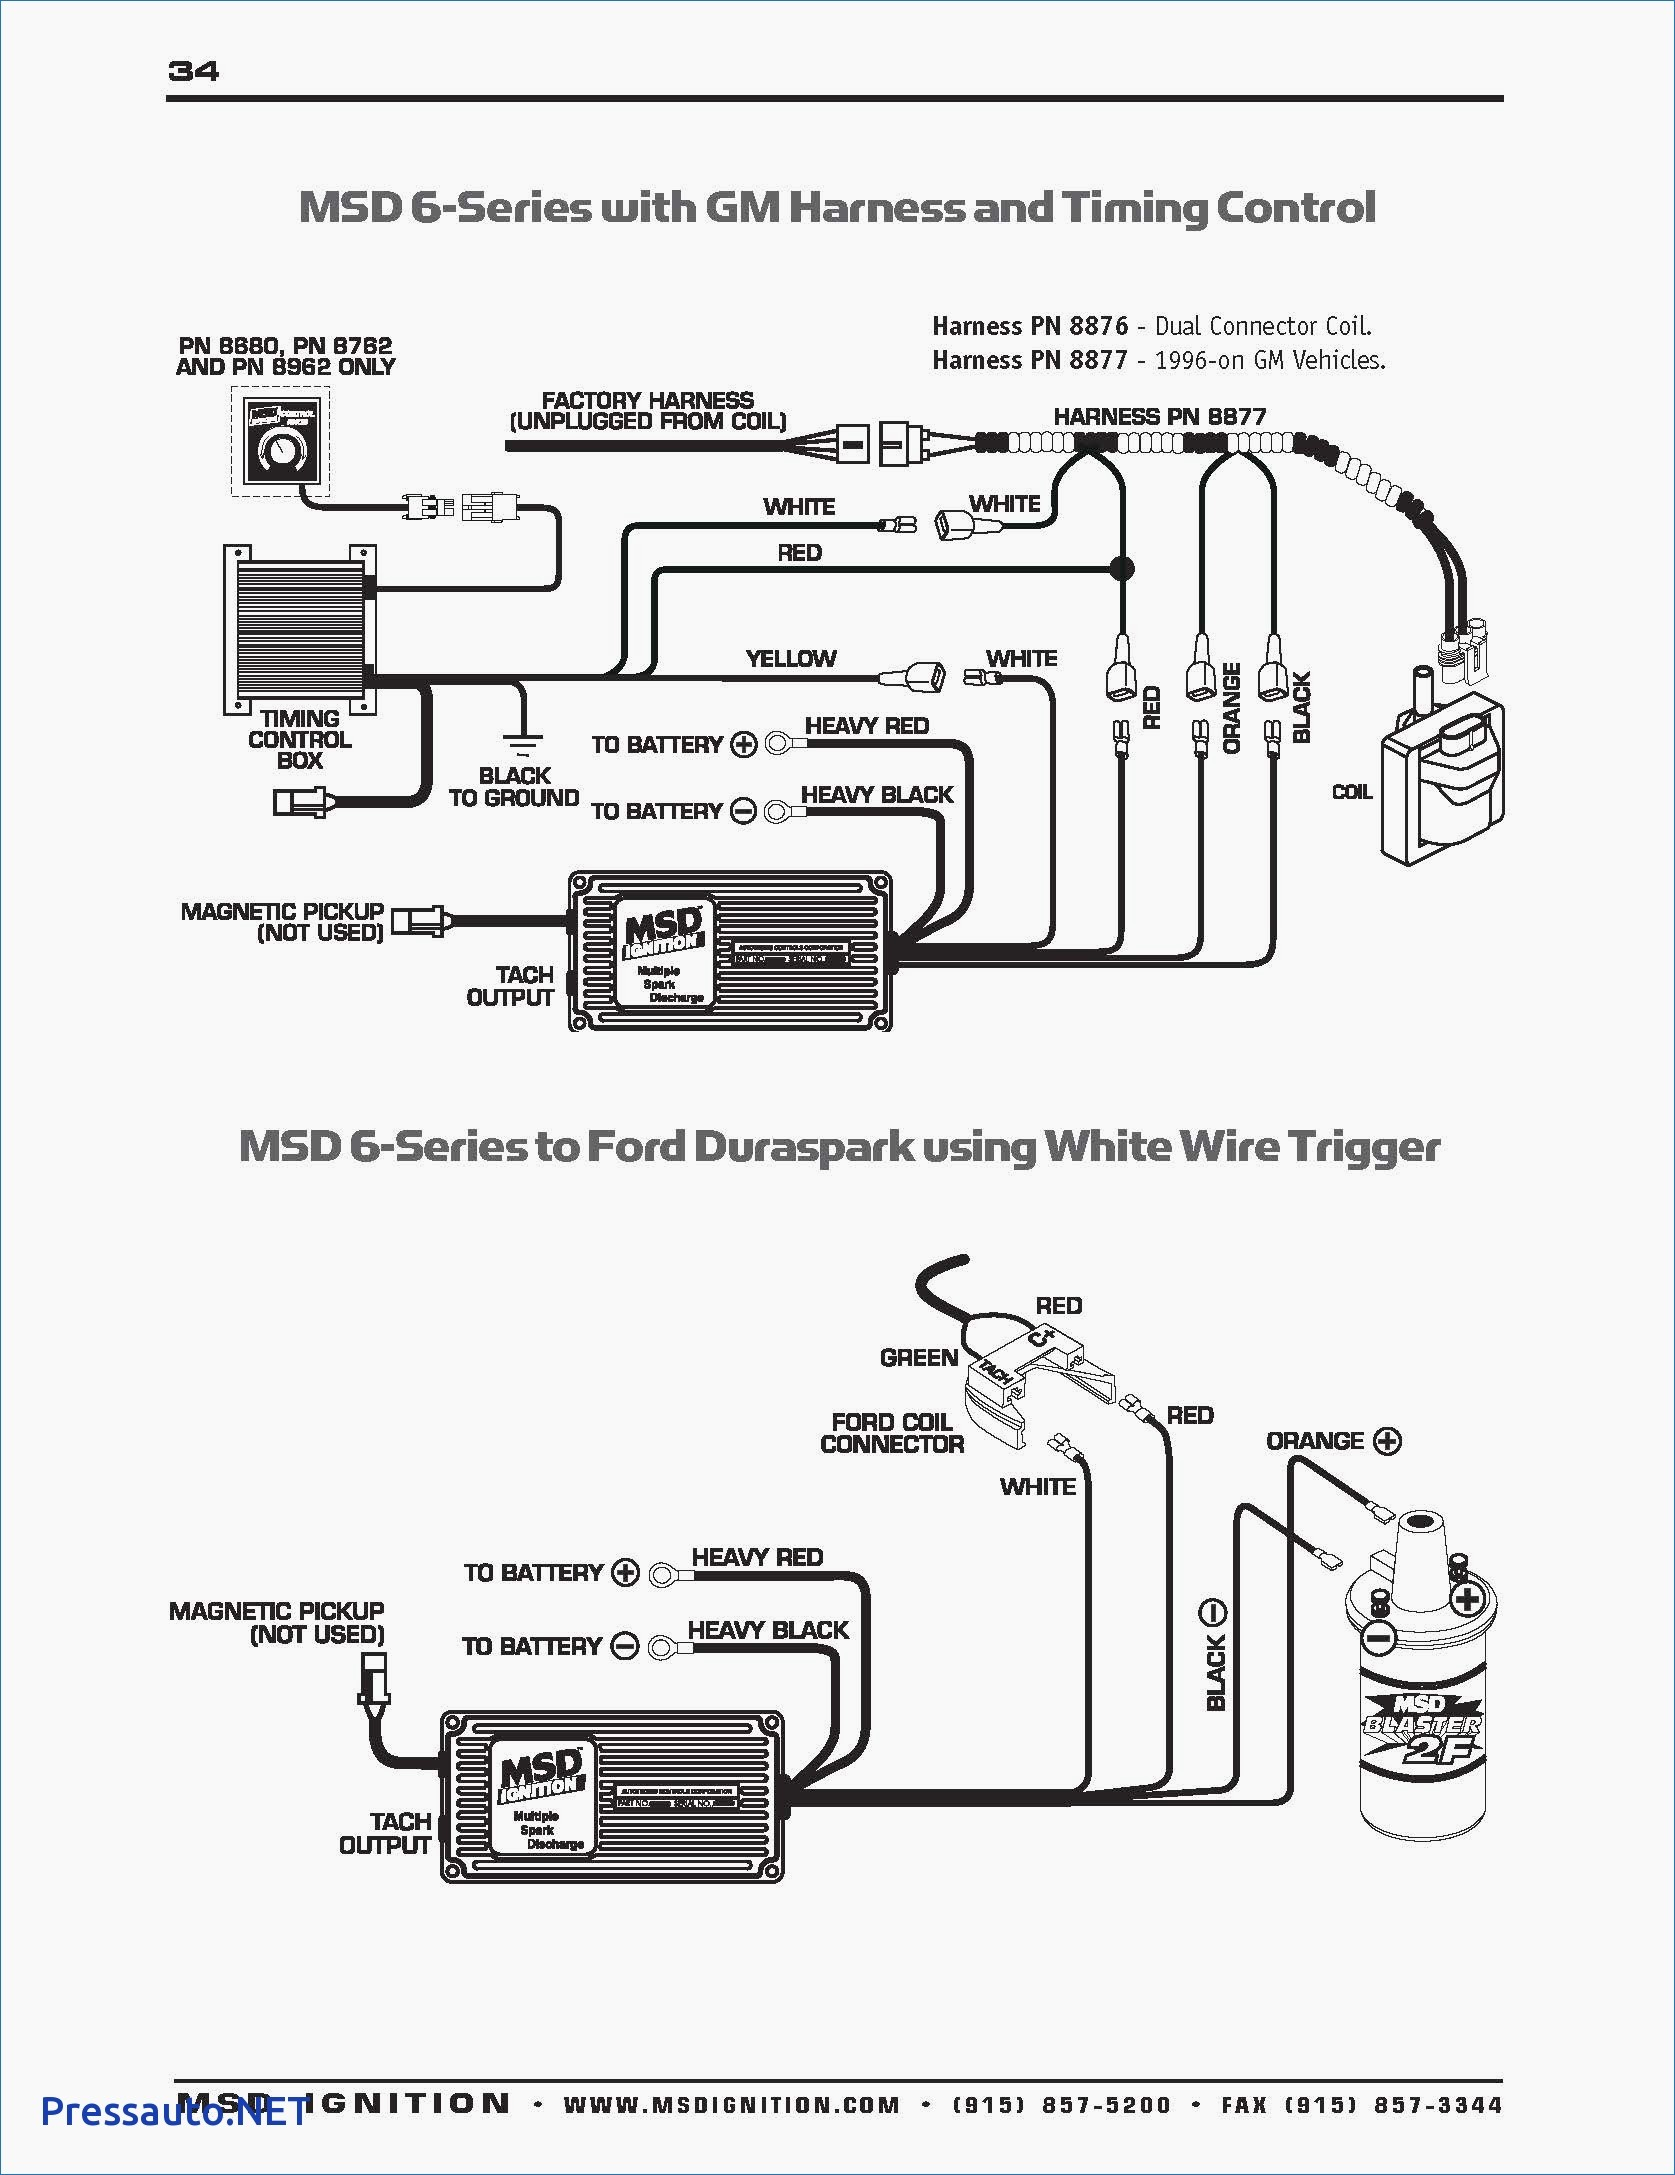 1976 Mgb Electronic Ignition System Wiring Diagram 76 Mg Midget Excellent Fiat Uno Distributor Module